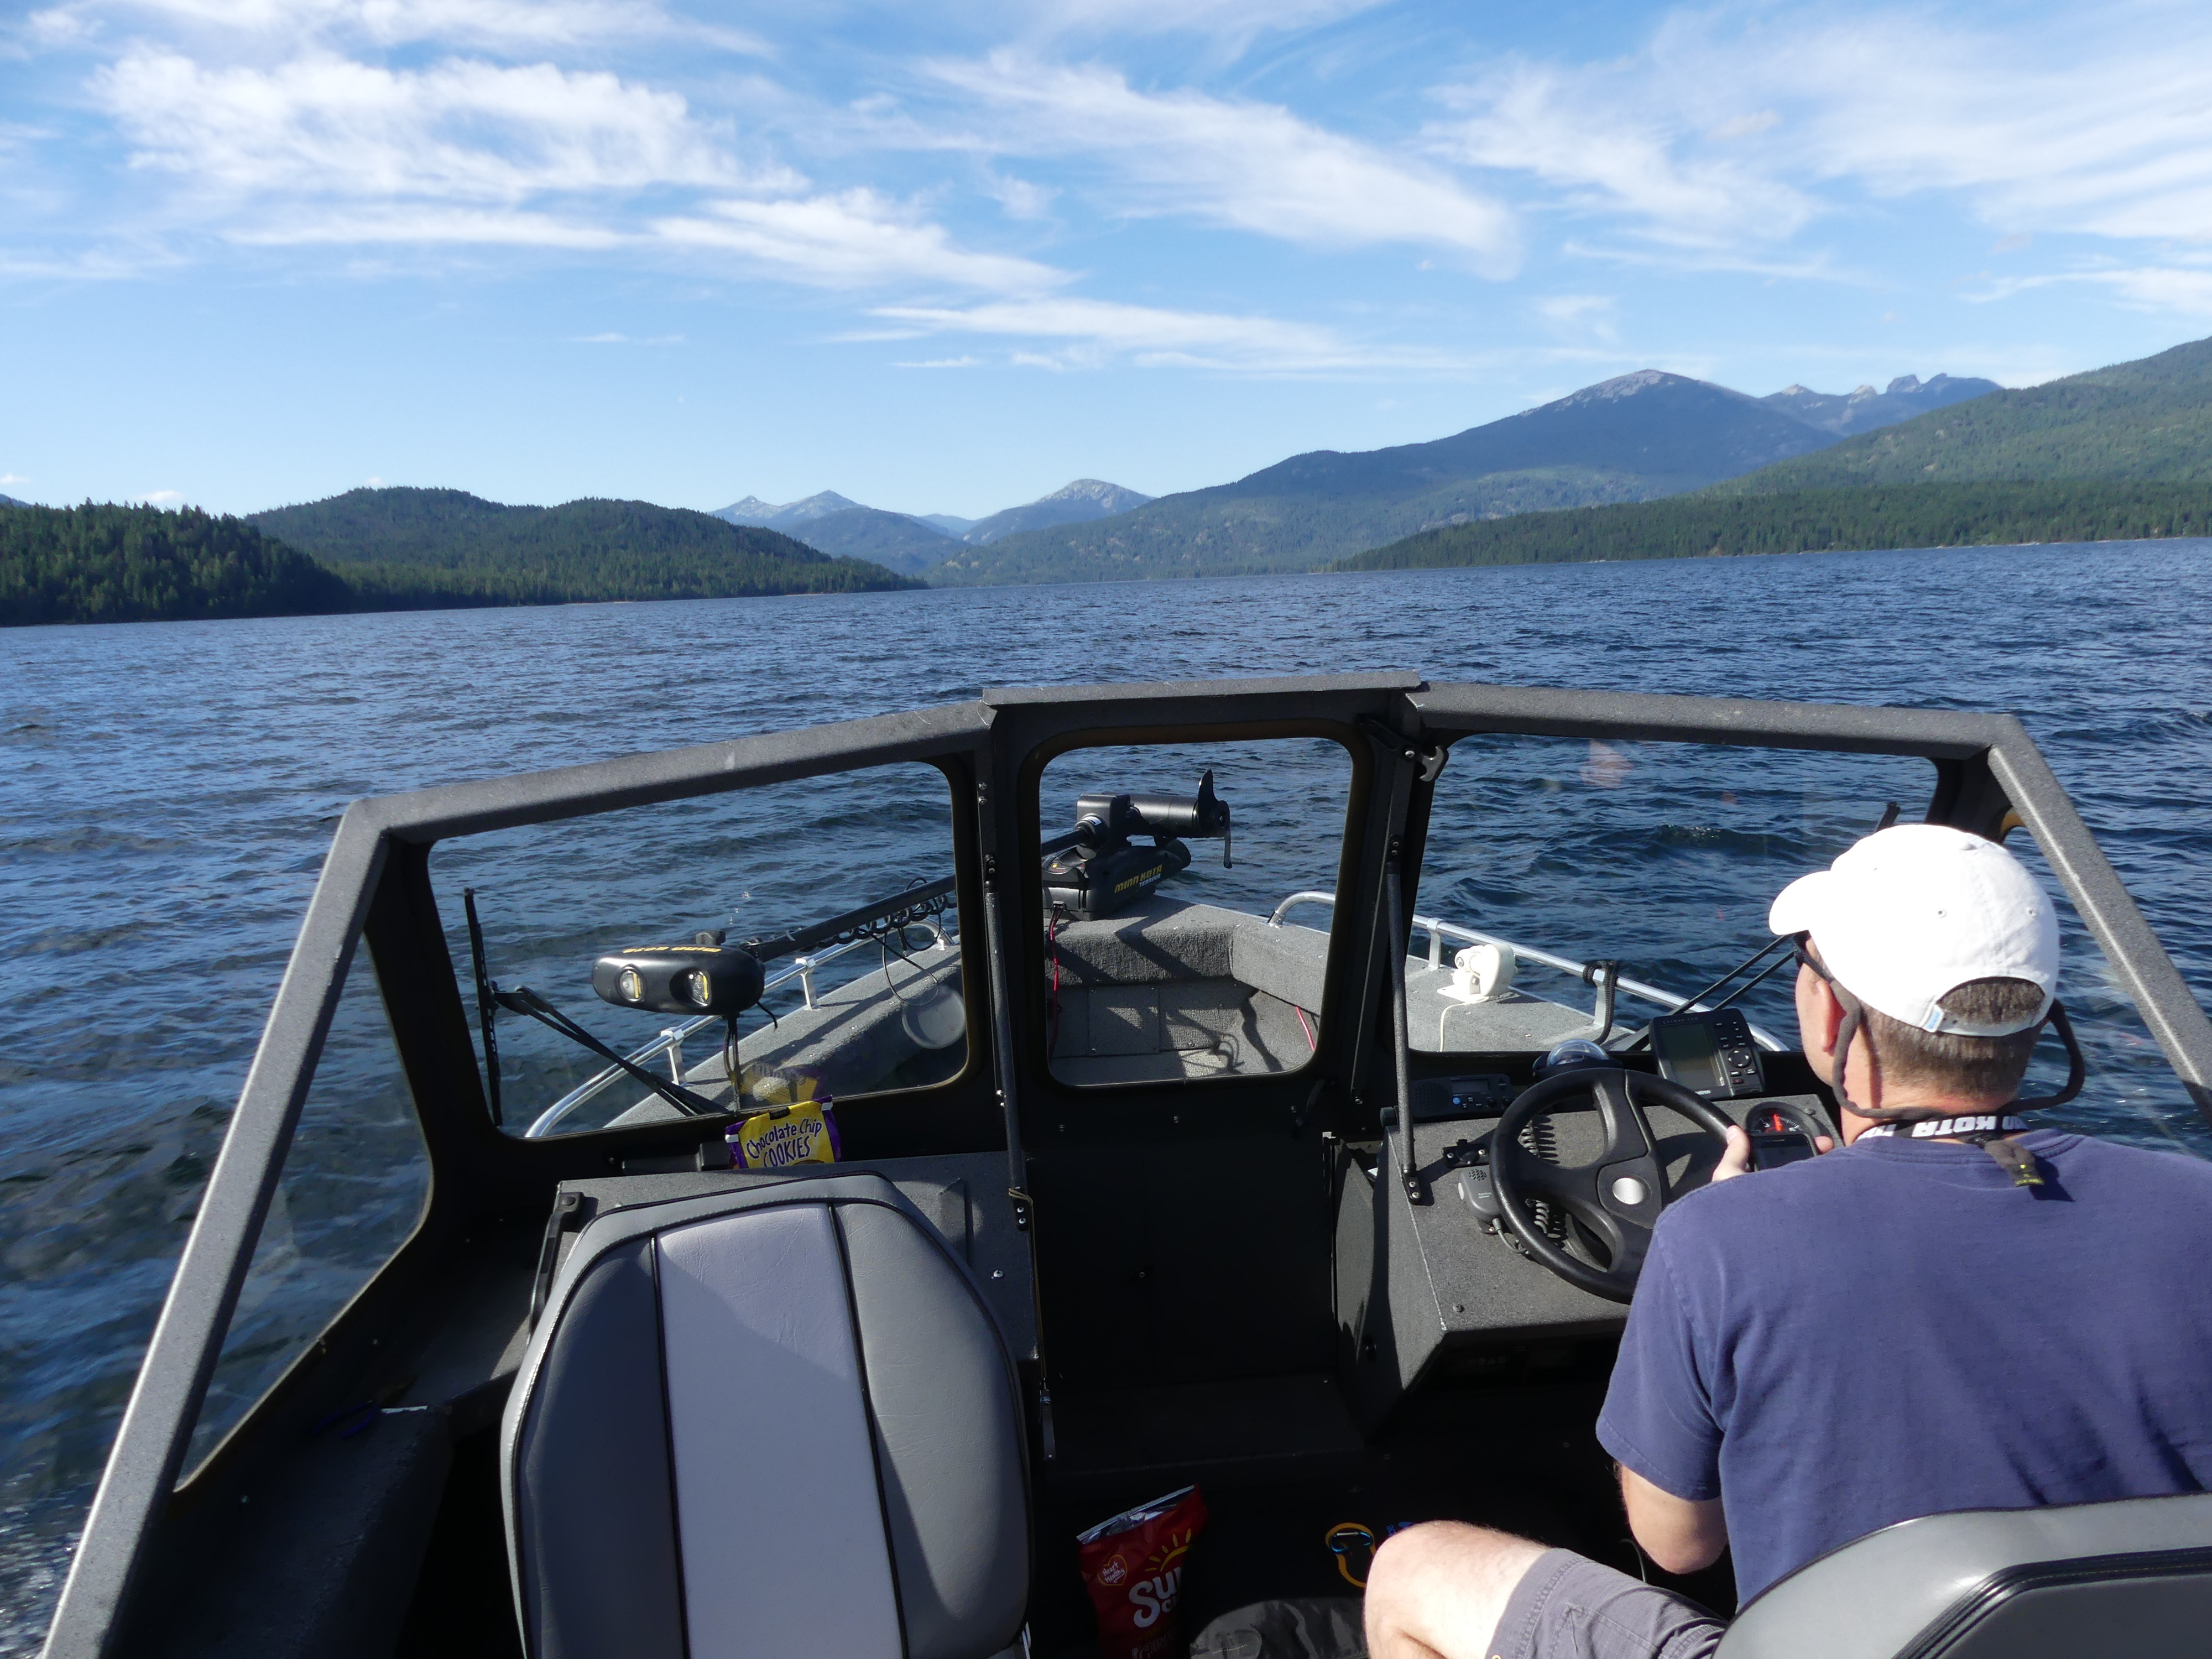 Fishing at priest lake is at a crossroads idaho fish and for Fish and game idaho